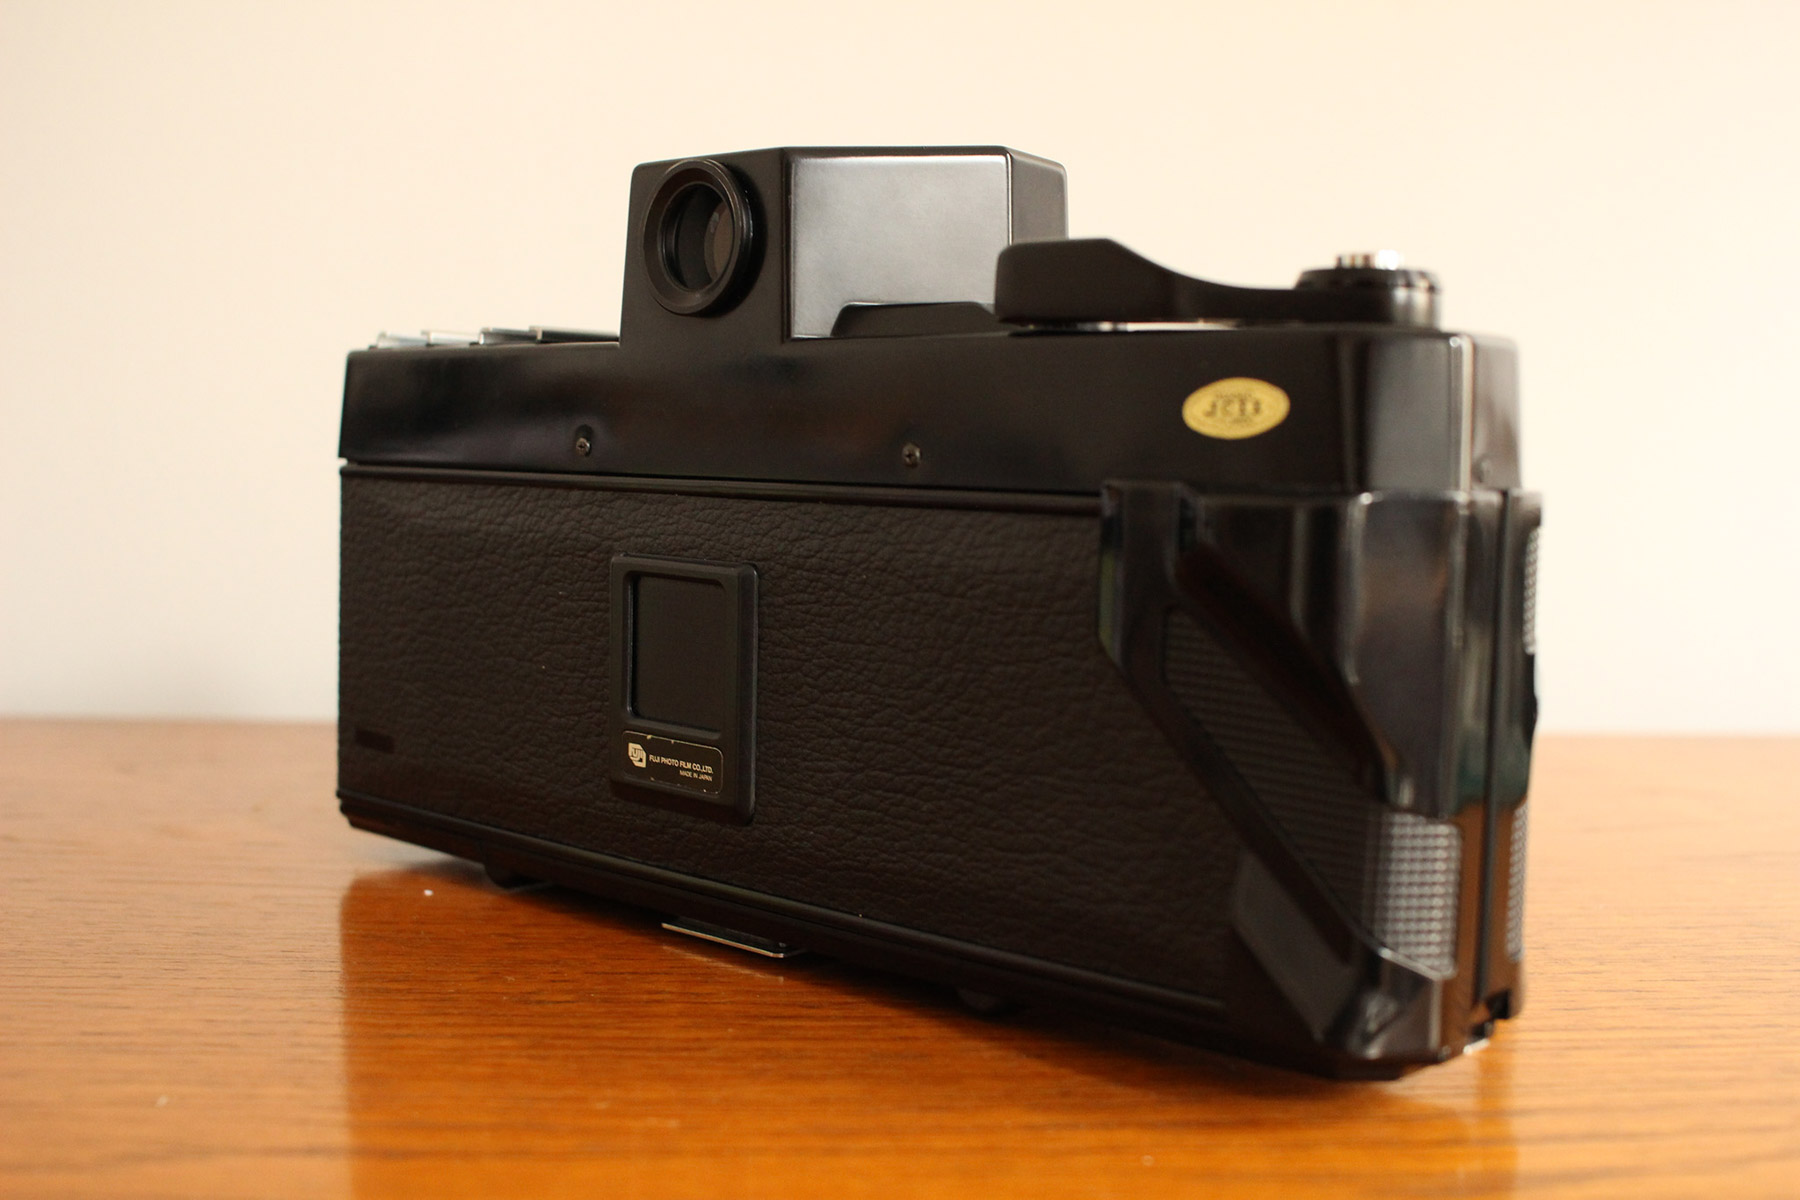 Fujica Panorama G617 Professional - Rear right